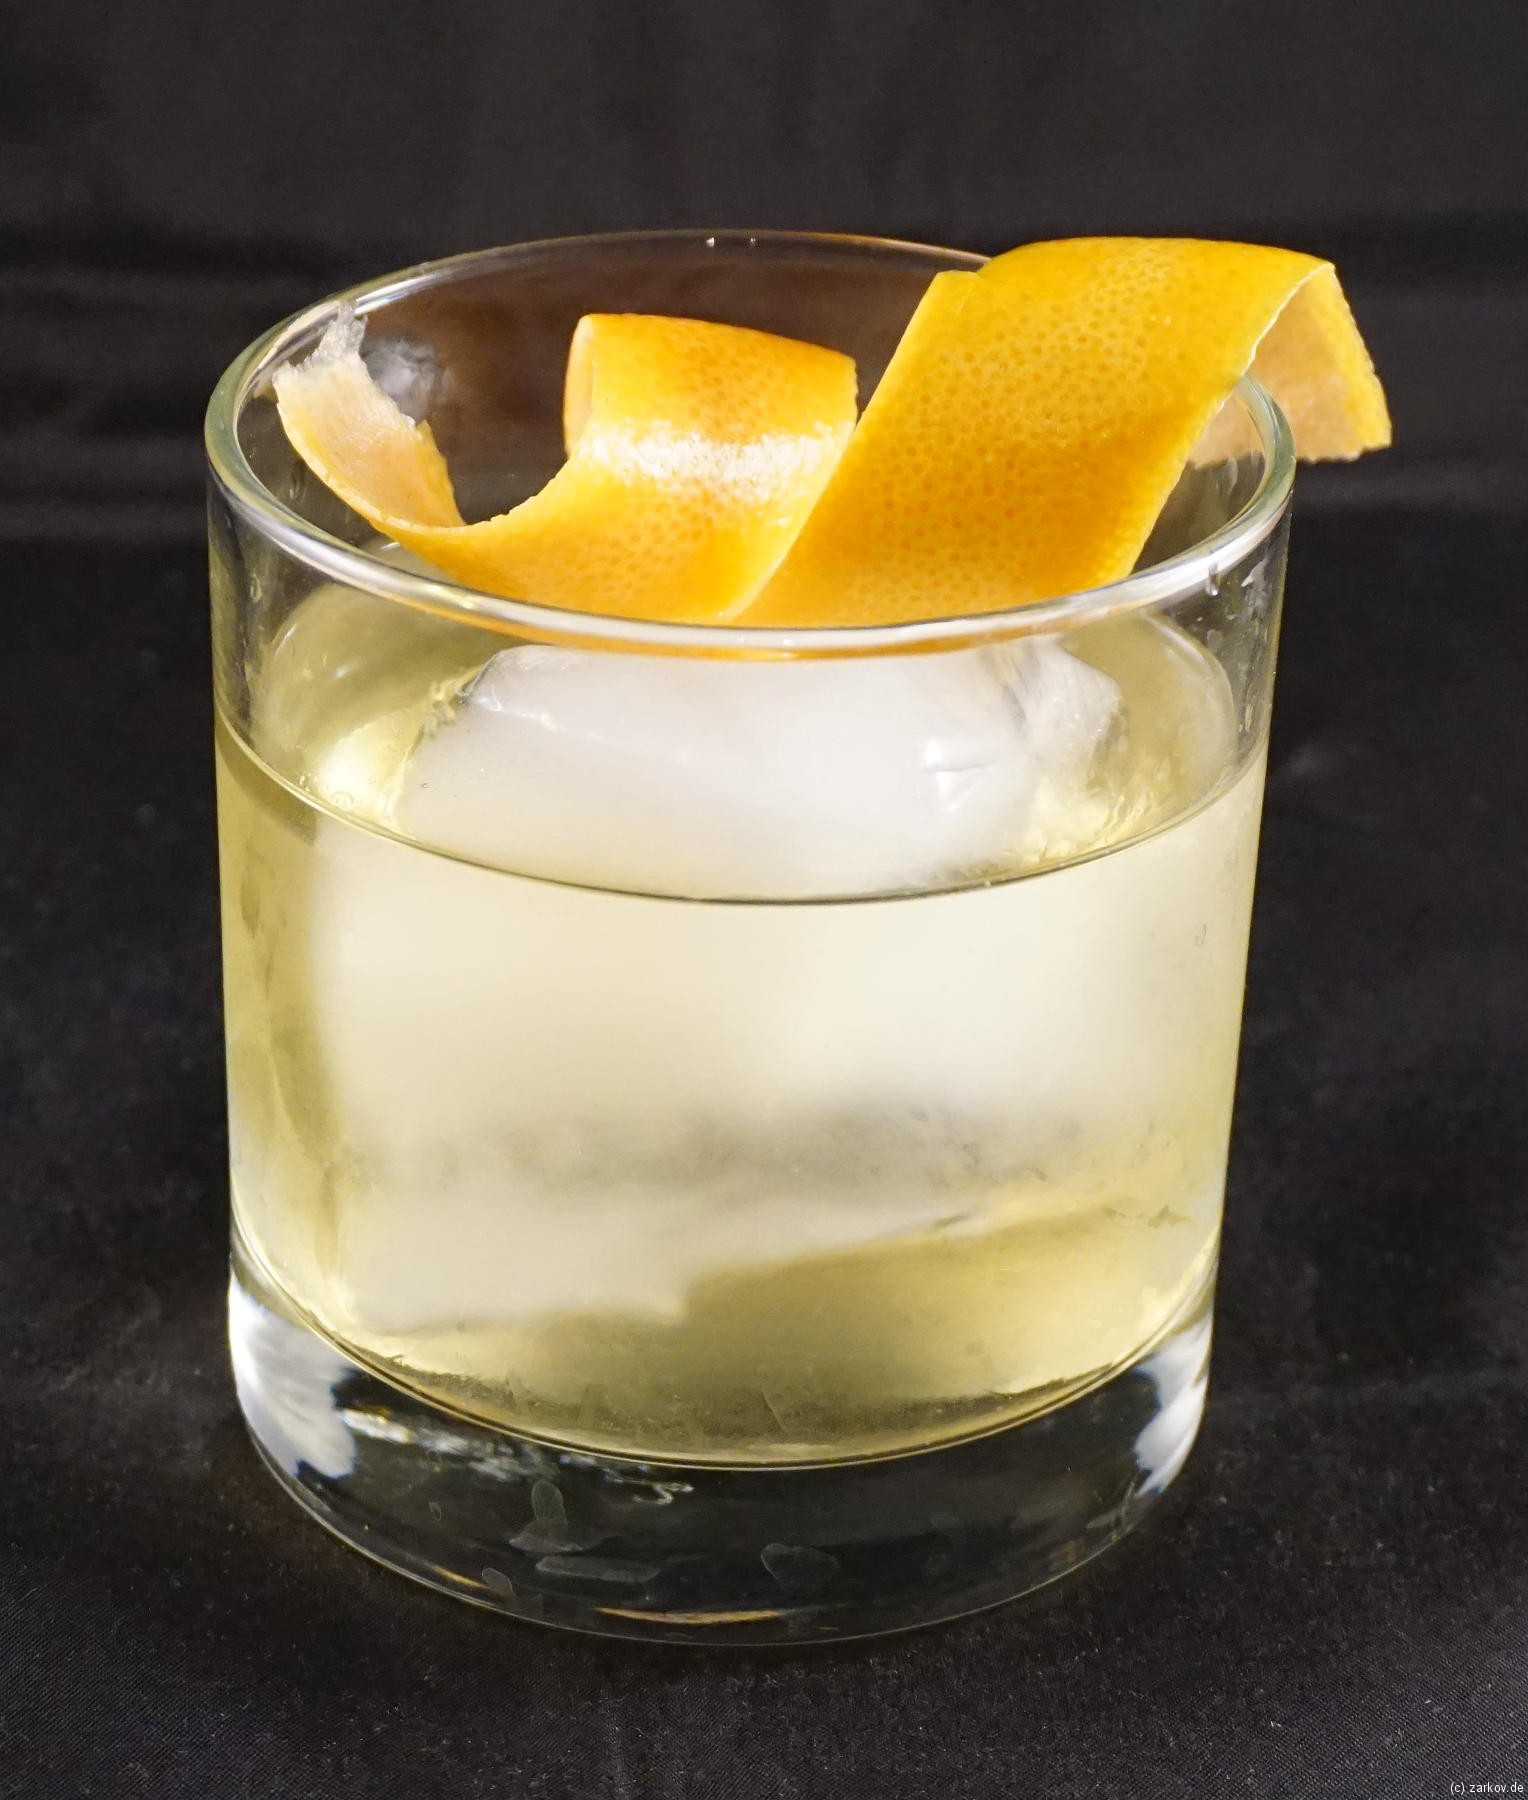 Elder Fashioned Cocktail